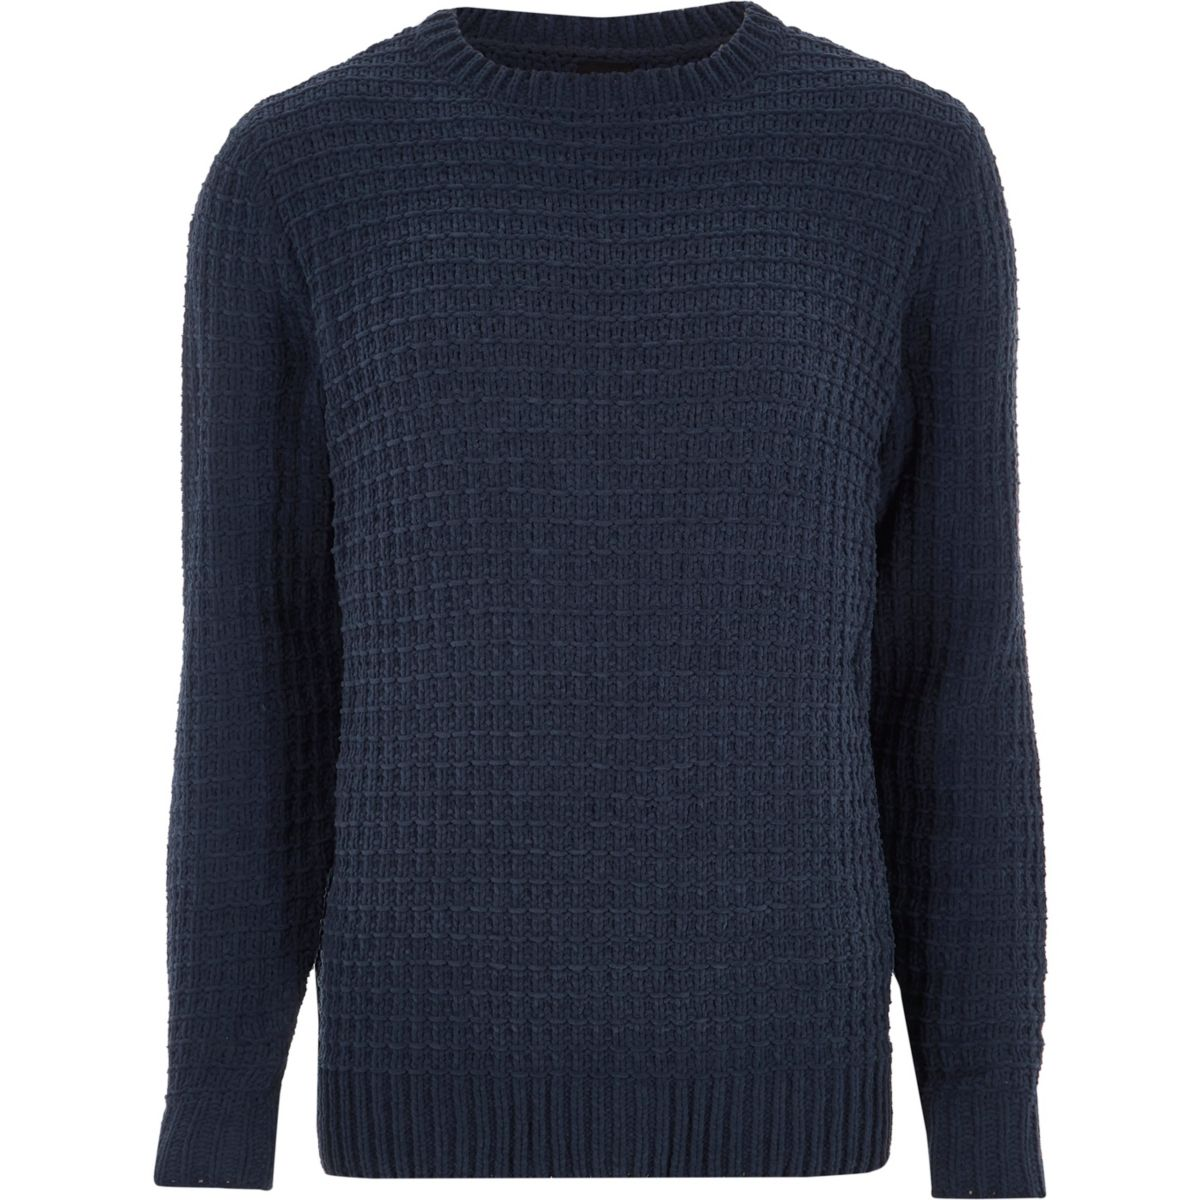 Navy textured chenille knit jumper